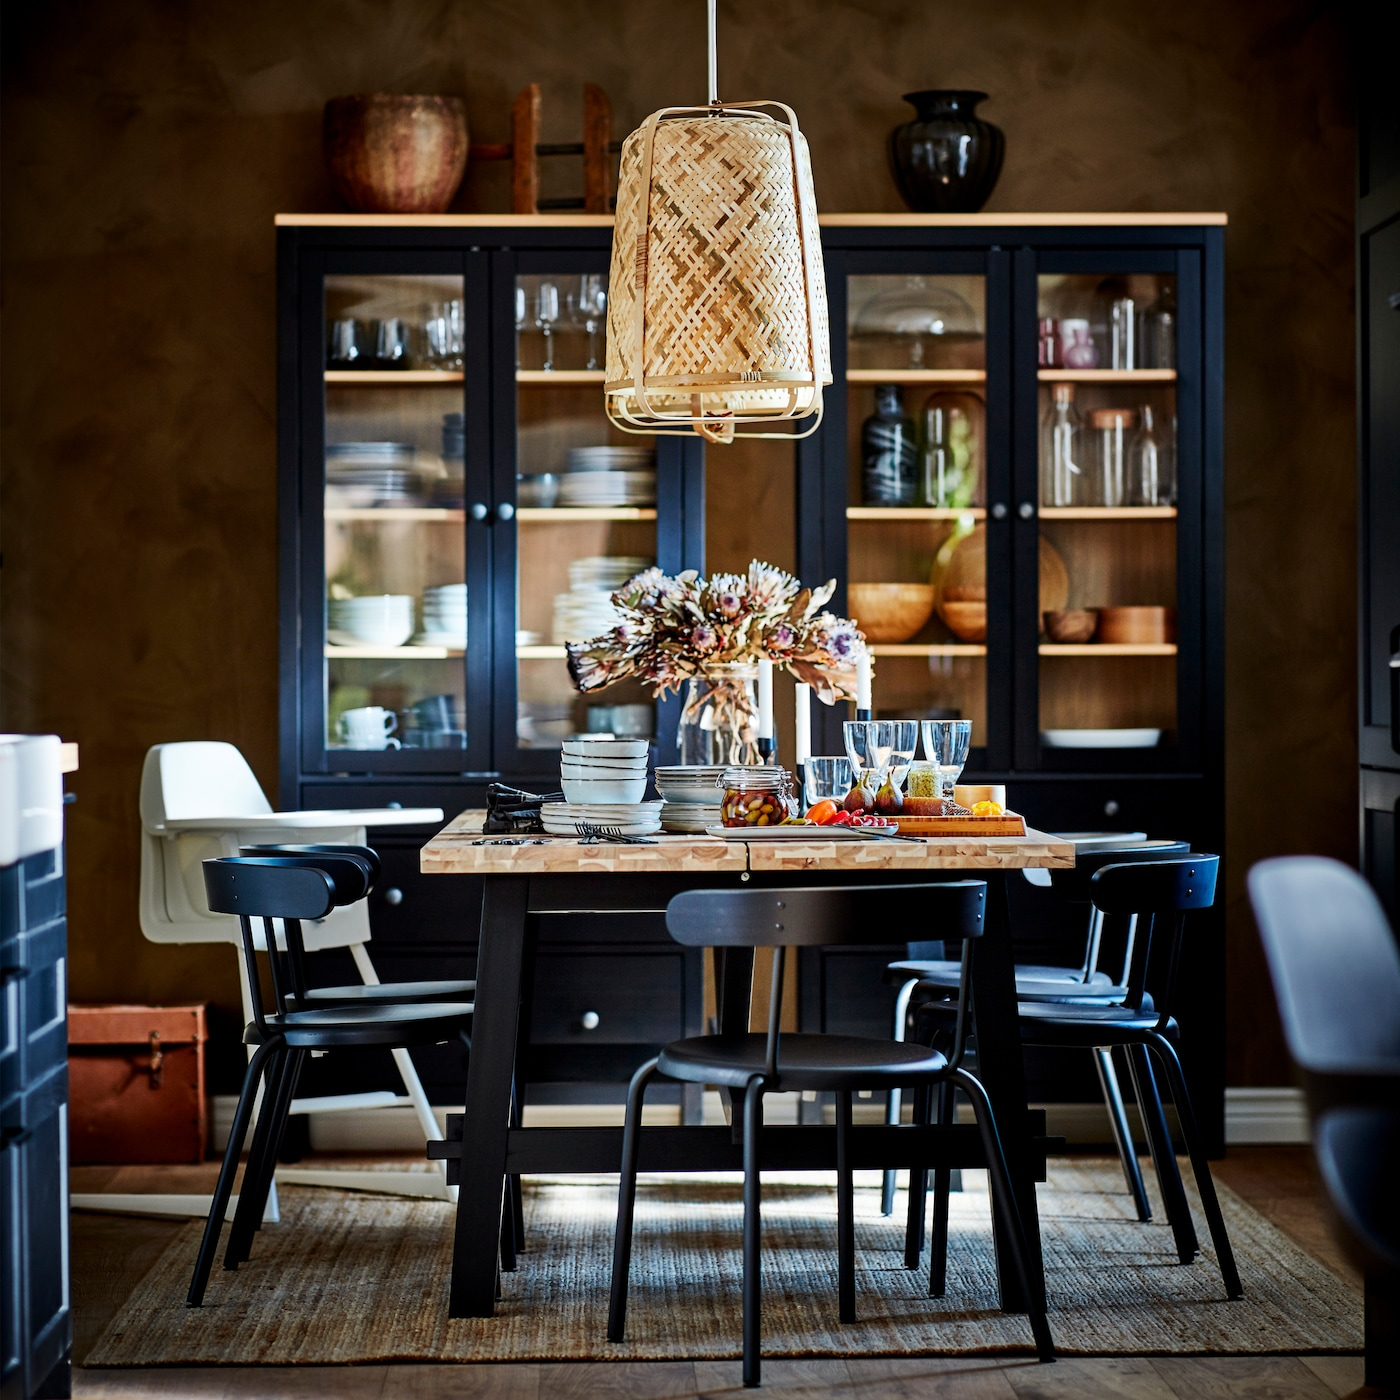 A dining table in black/acacia, anthracite chairs, a jute rug, pendant lamps in bamboo and two cabinets in solid pine.